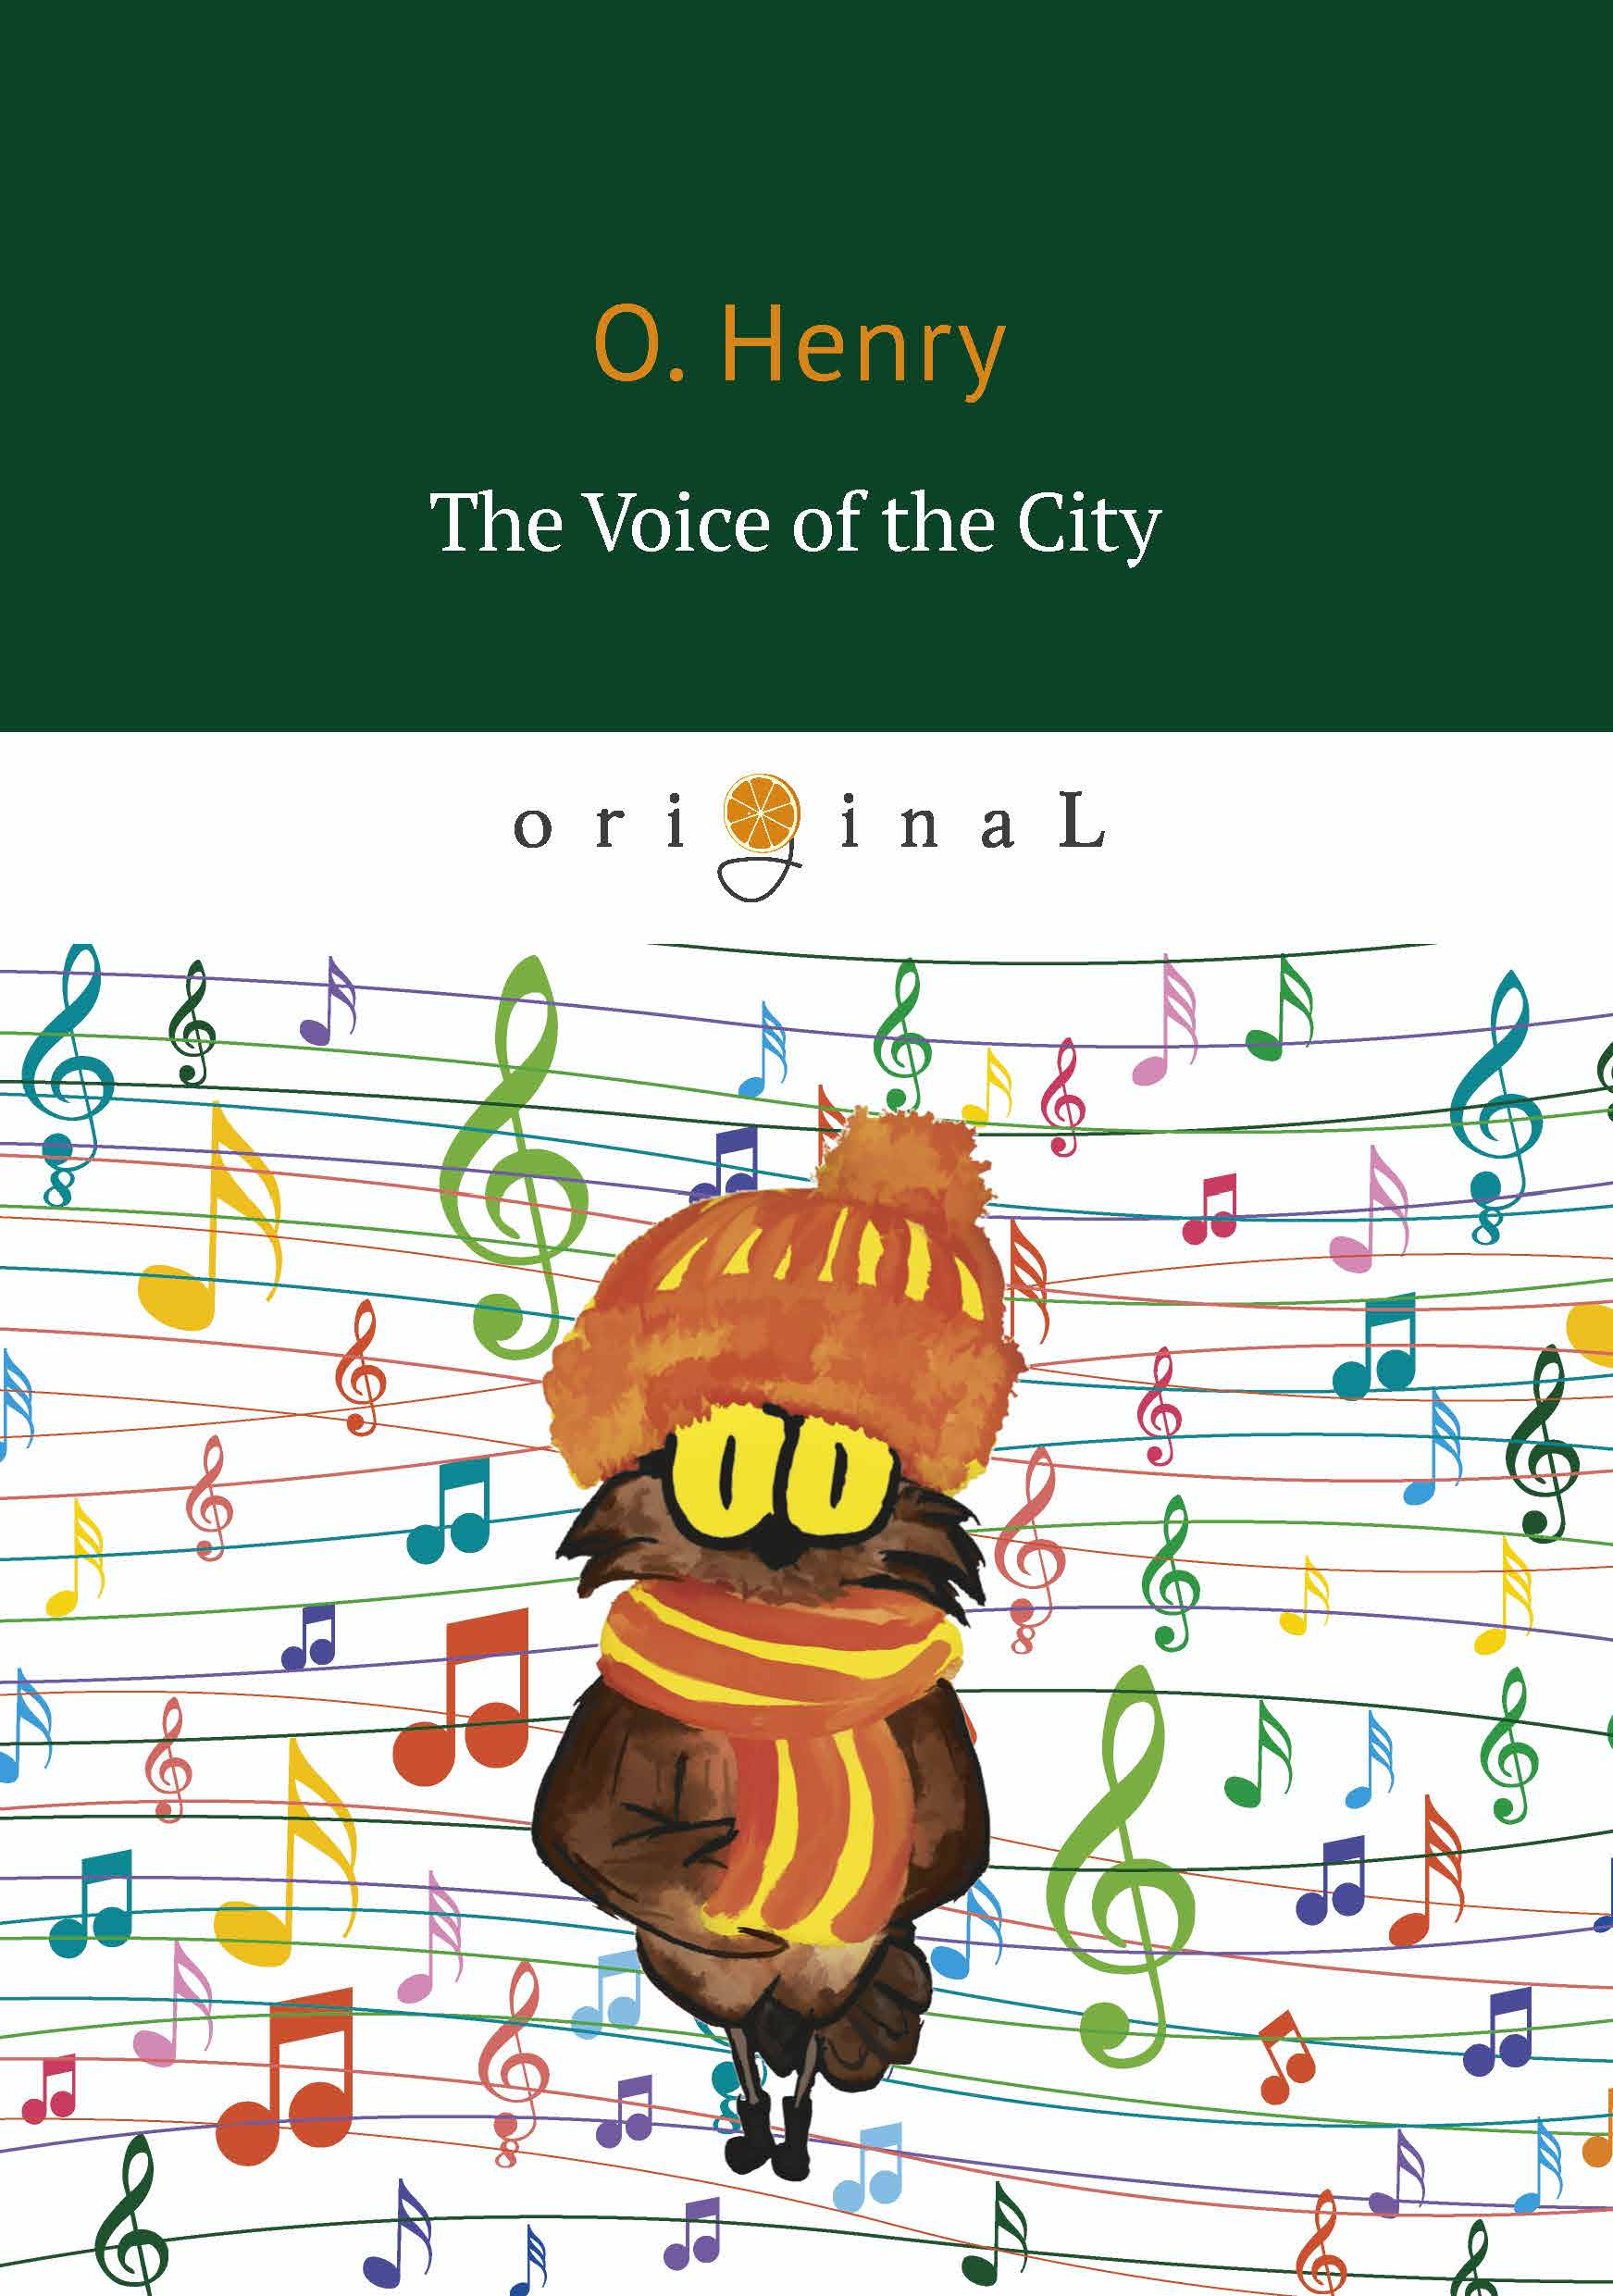 O. Henry The Voice of the City ISBN: 978-5-521-07057-2 henry o short series isbn 9785949621950